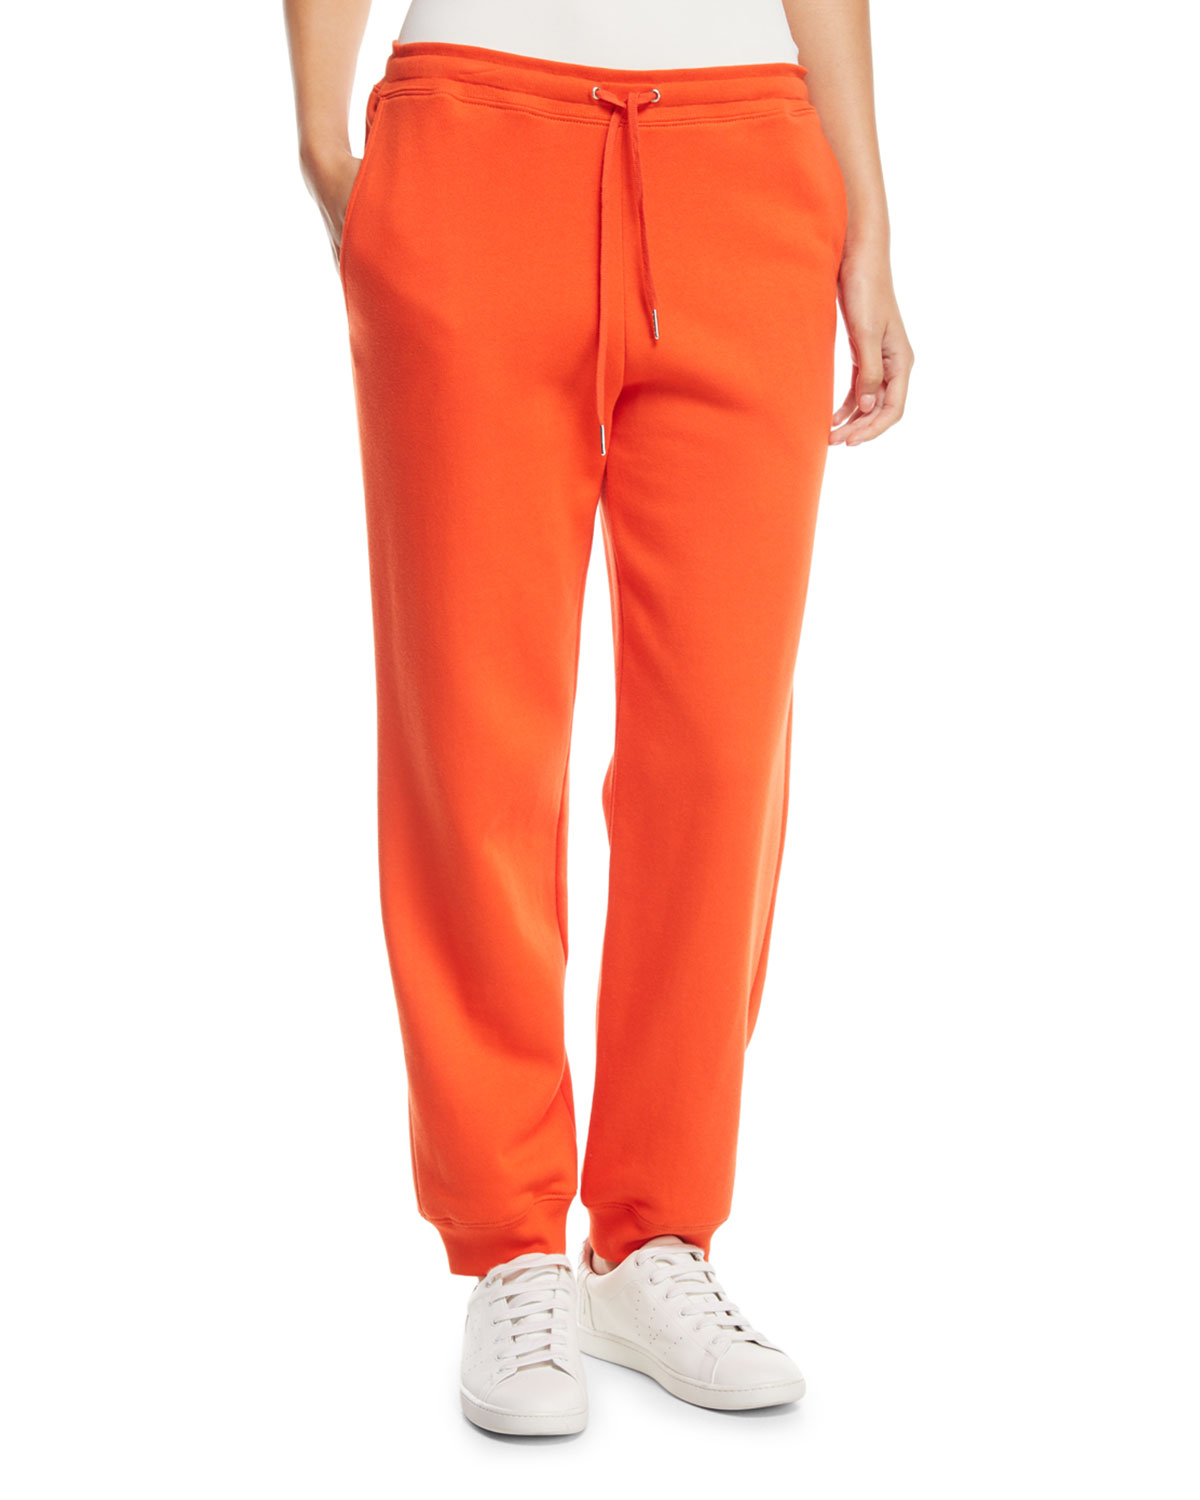 Edgar Tapered Jogger Sweatpants